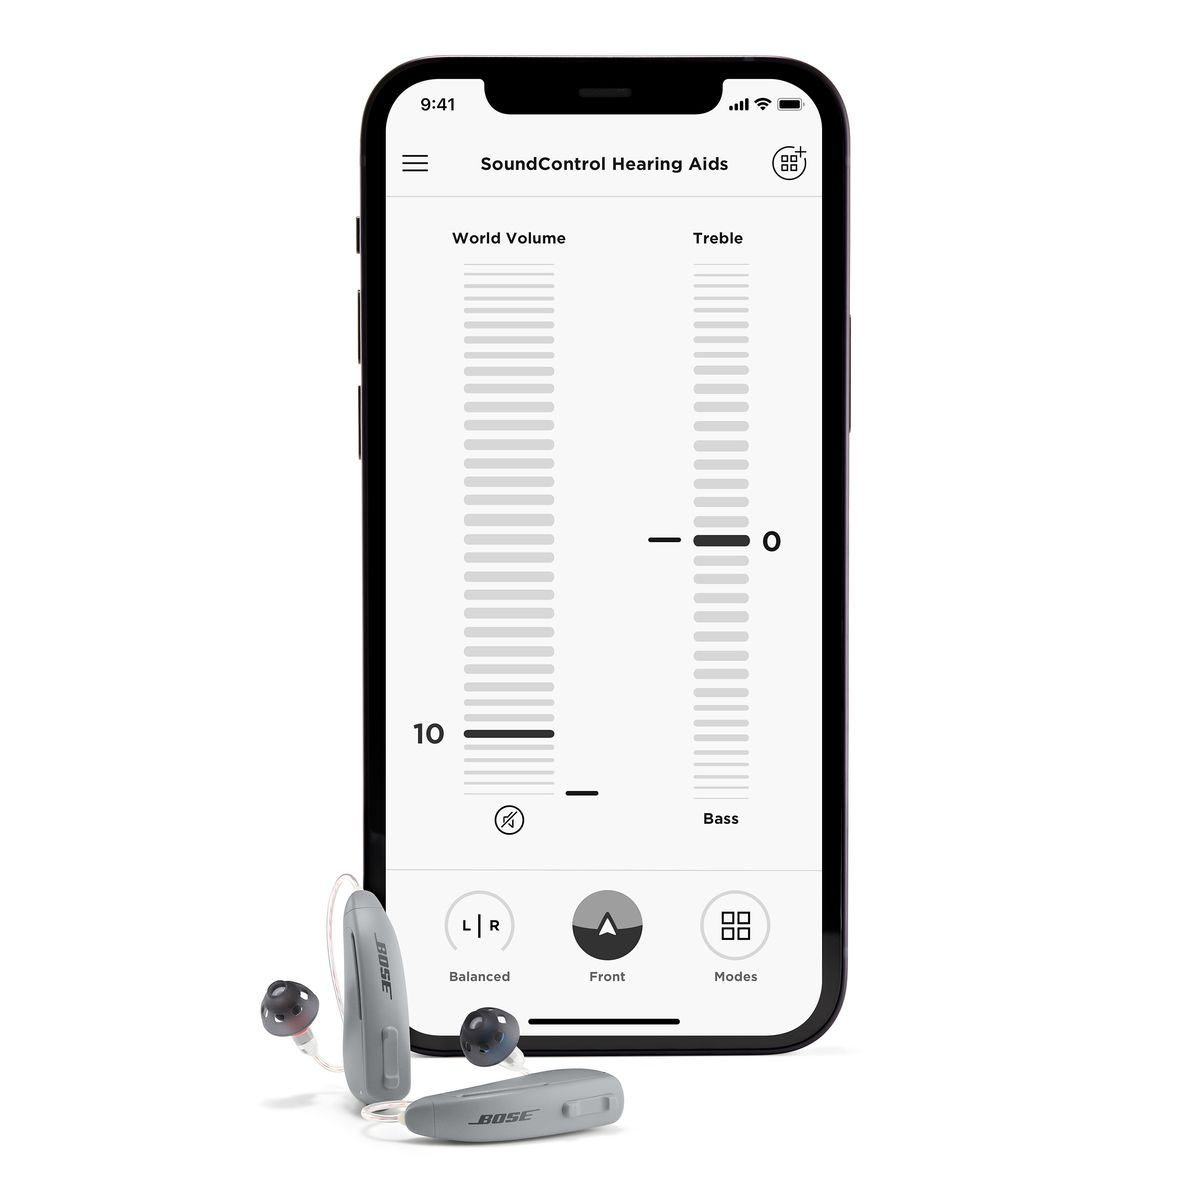 A smartphone propped next to the Bose hearing aids. On the phone's screen is a page that shows scrolling sliders for adjusting World Volume on the left and Treble and Bass on the right.